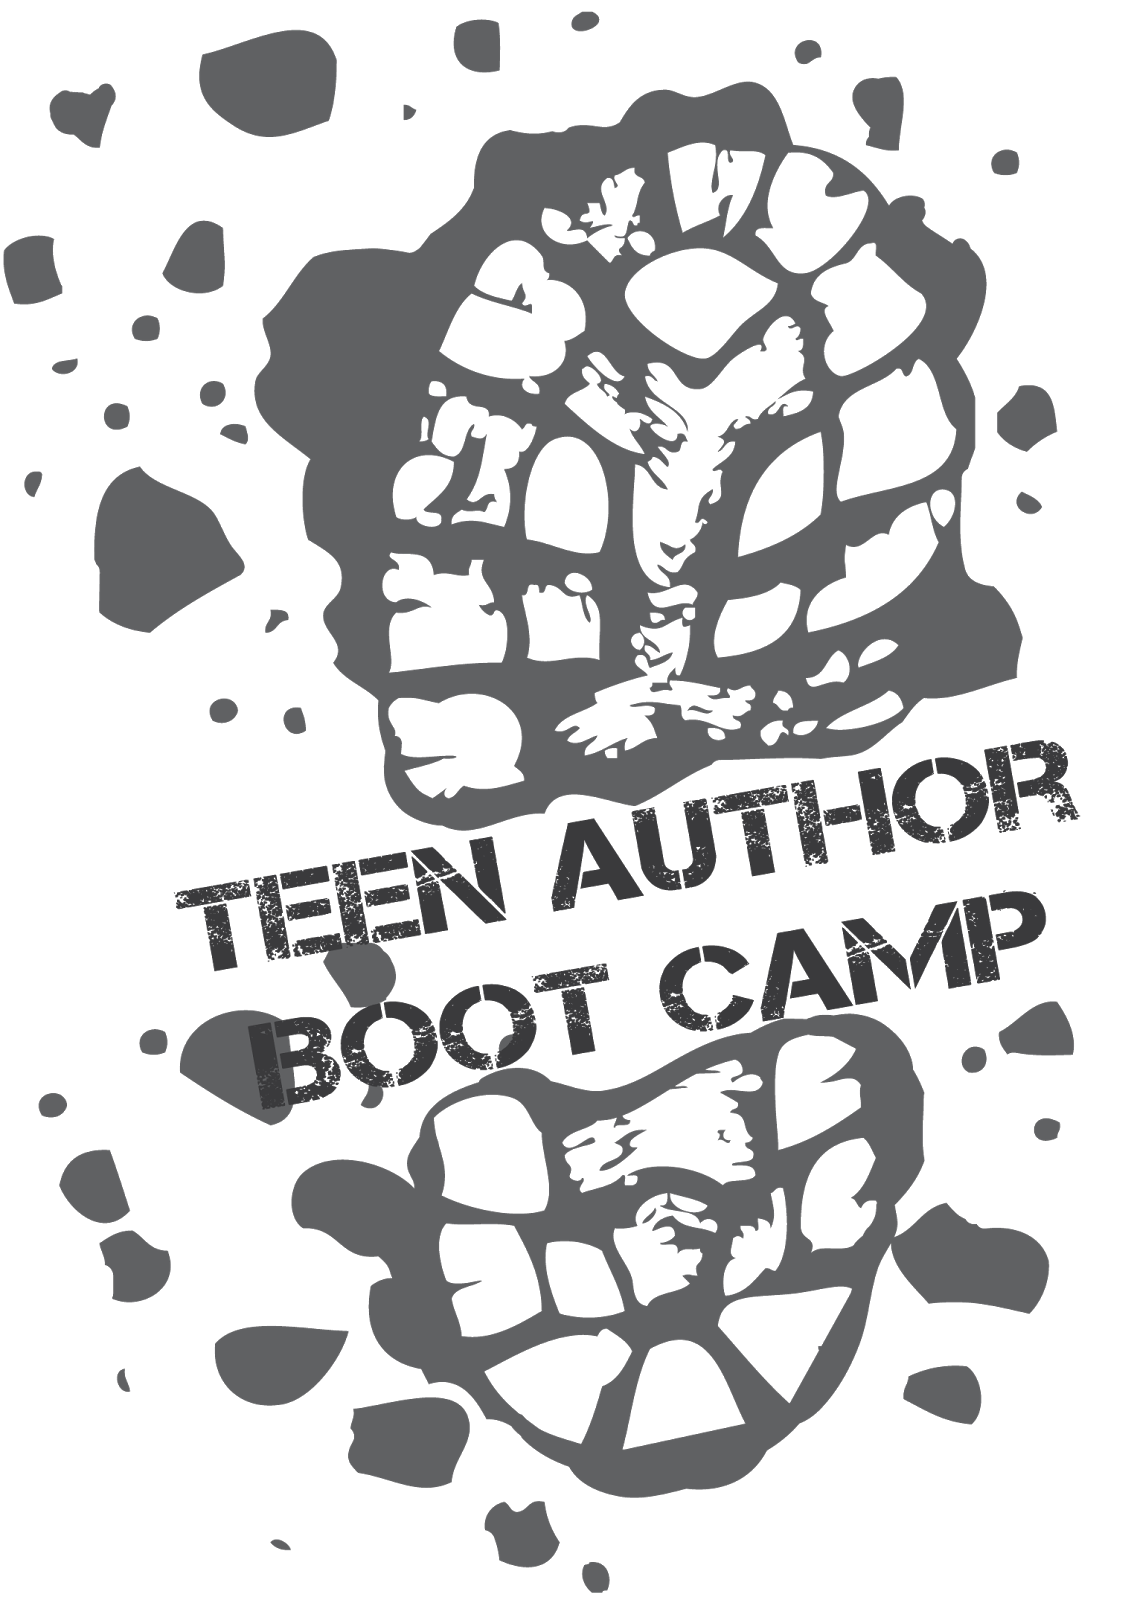 Teen Author Boot Camp